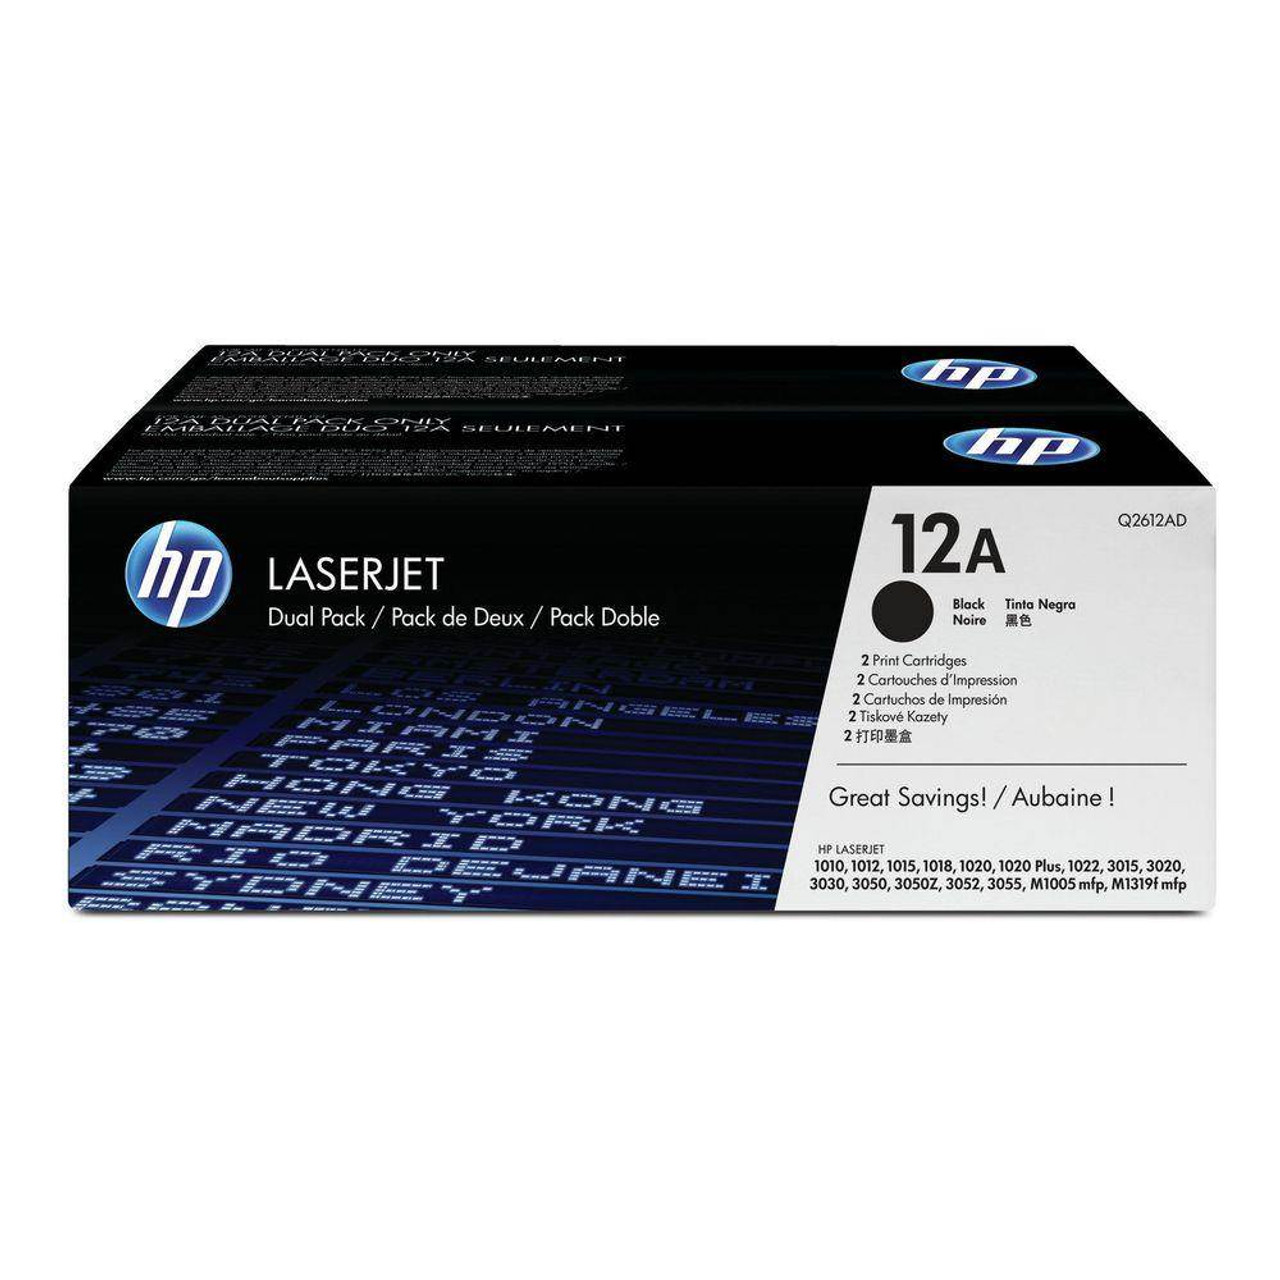 Image for HP LaserJet Q2612AD Dual Pack Black Print Cartridges for CX Computer Superstore